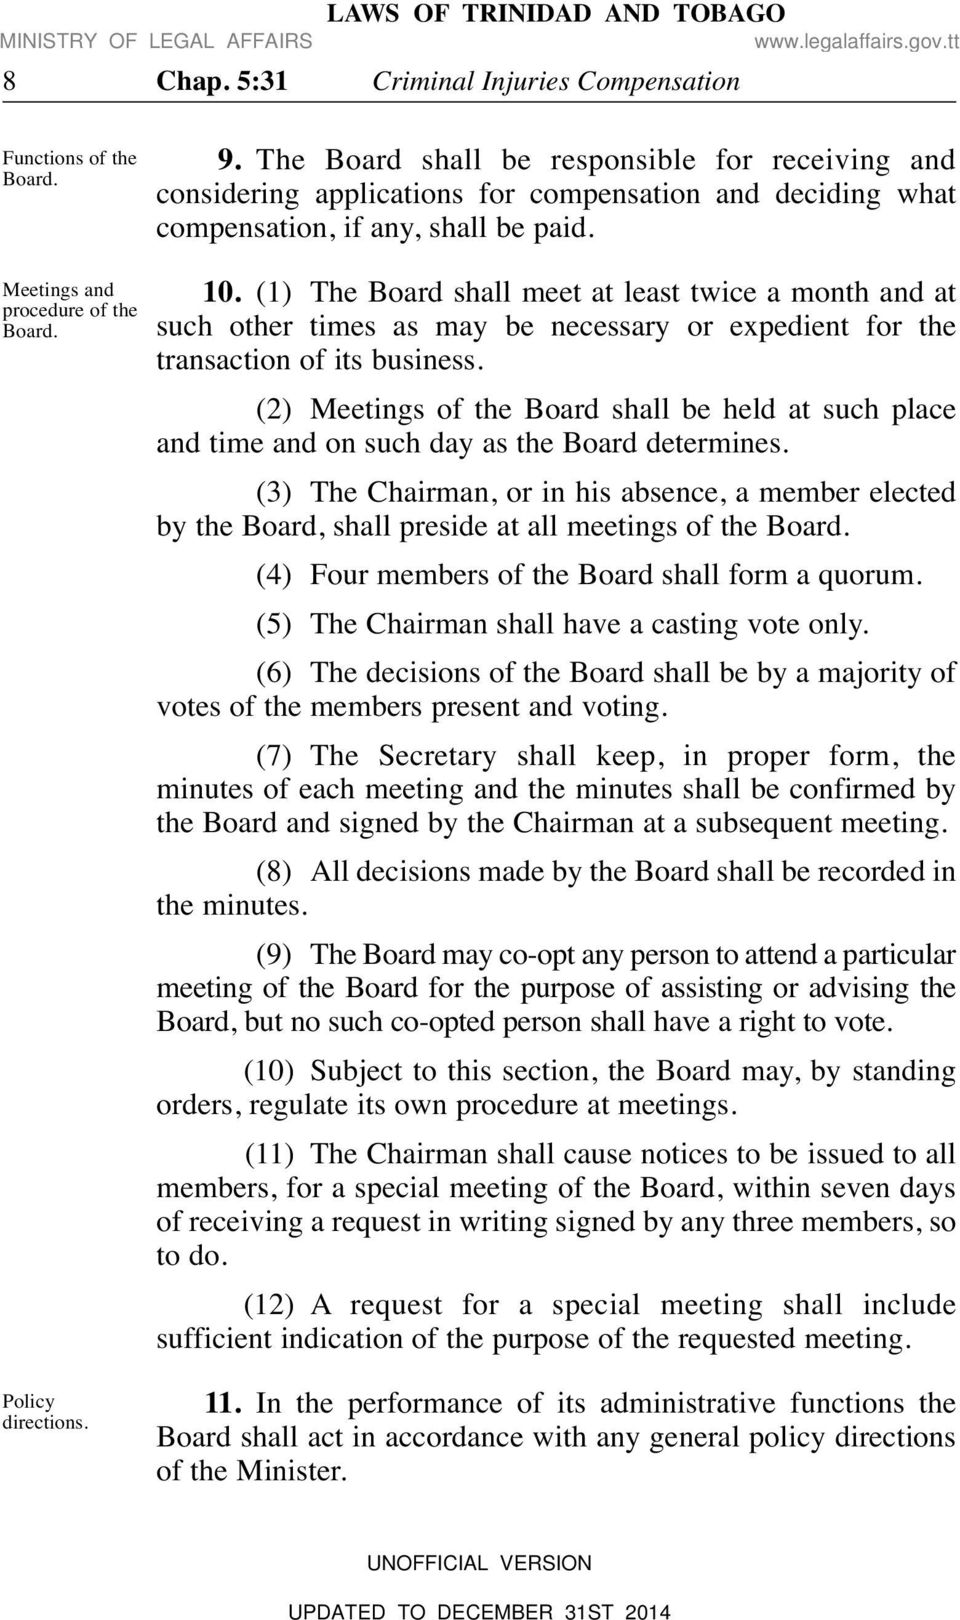 (1) The Board shall meet at least twice a month and at such other times as may be necessary or expedient for the transaction of its business.